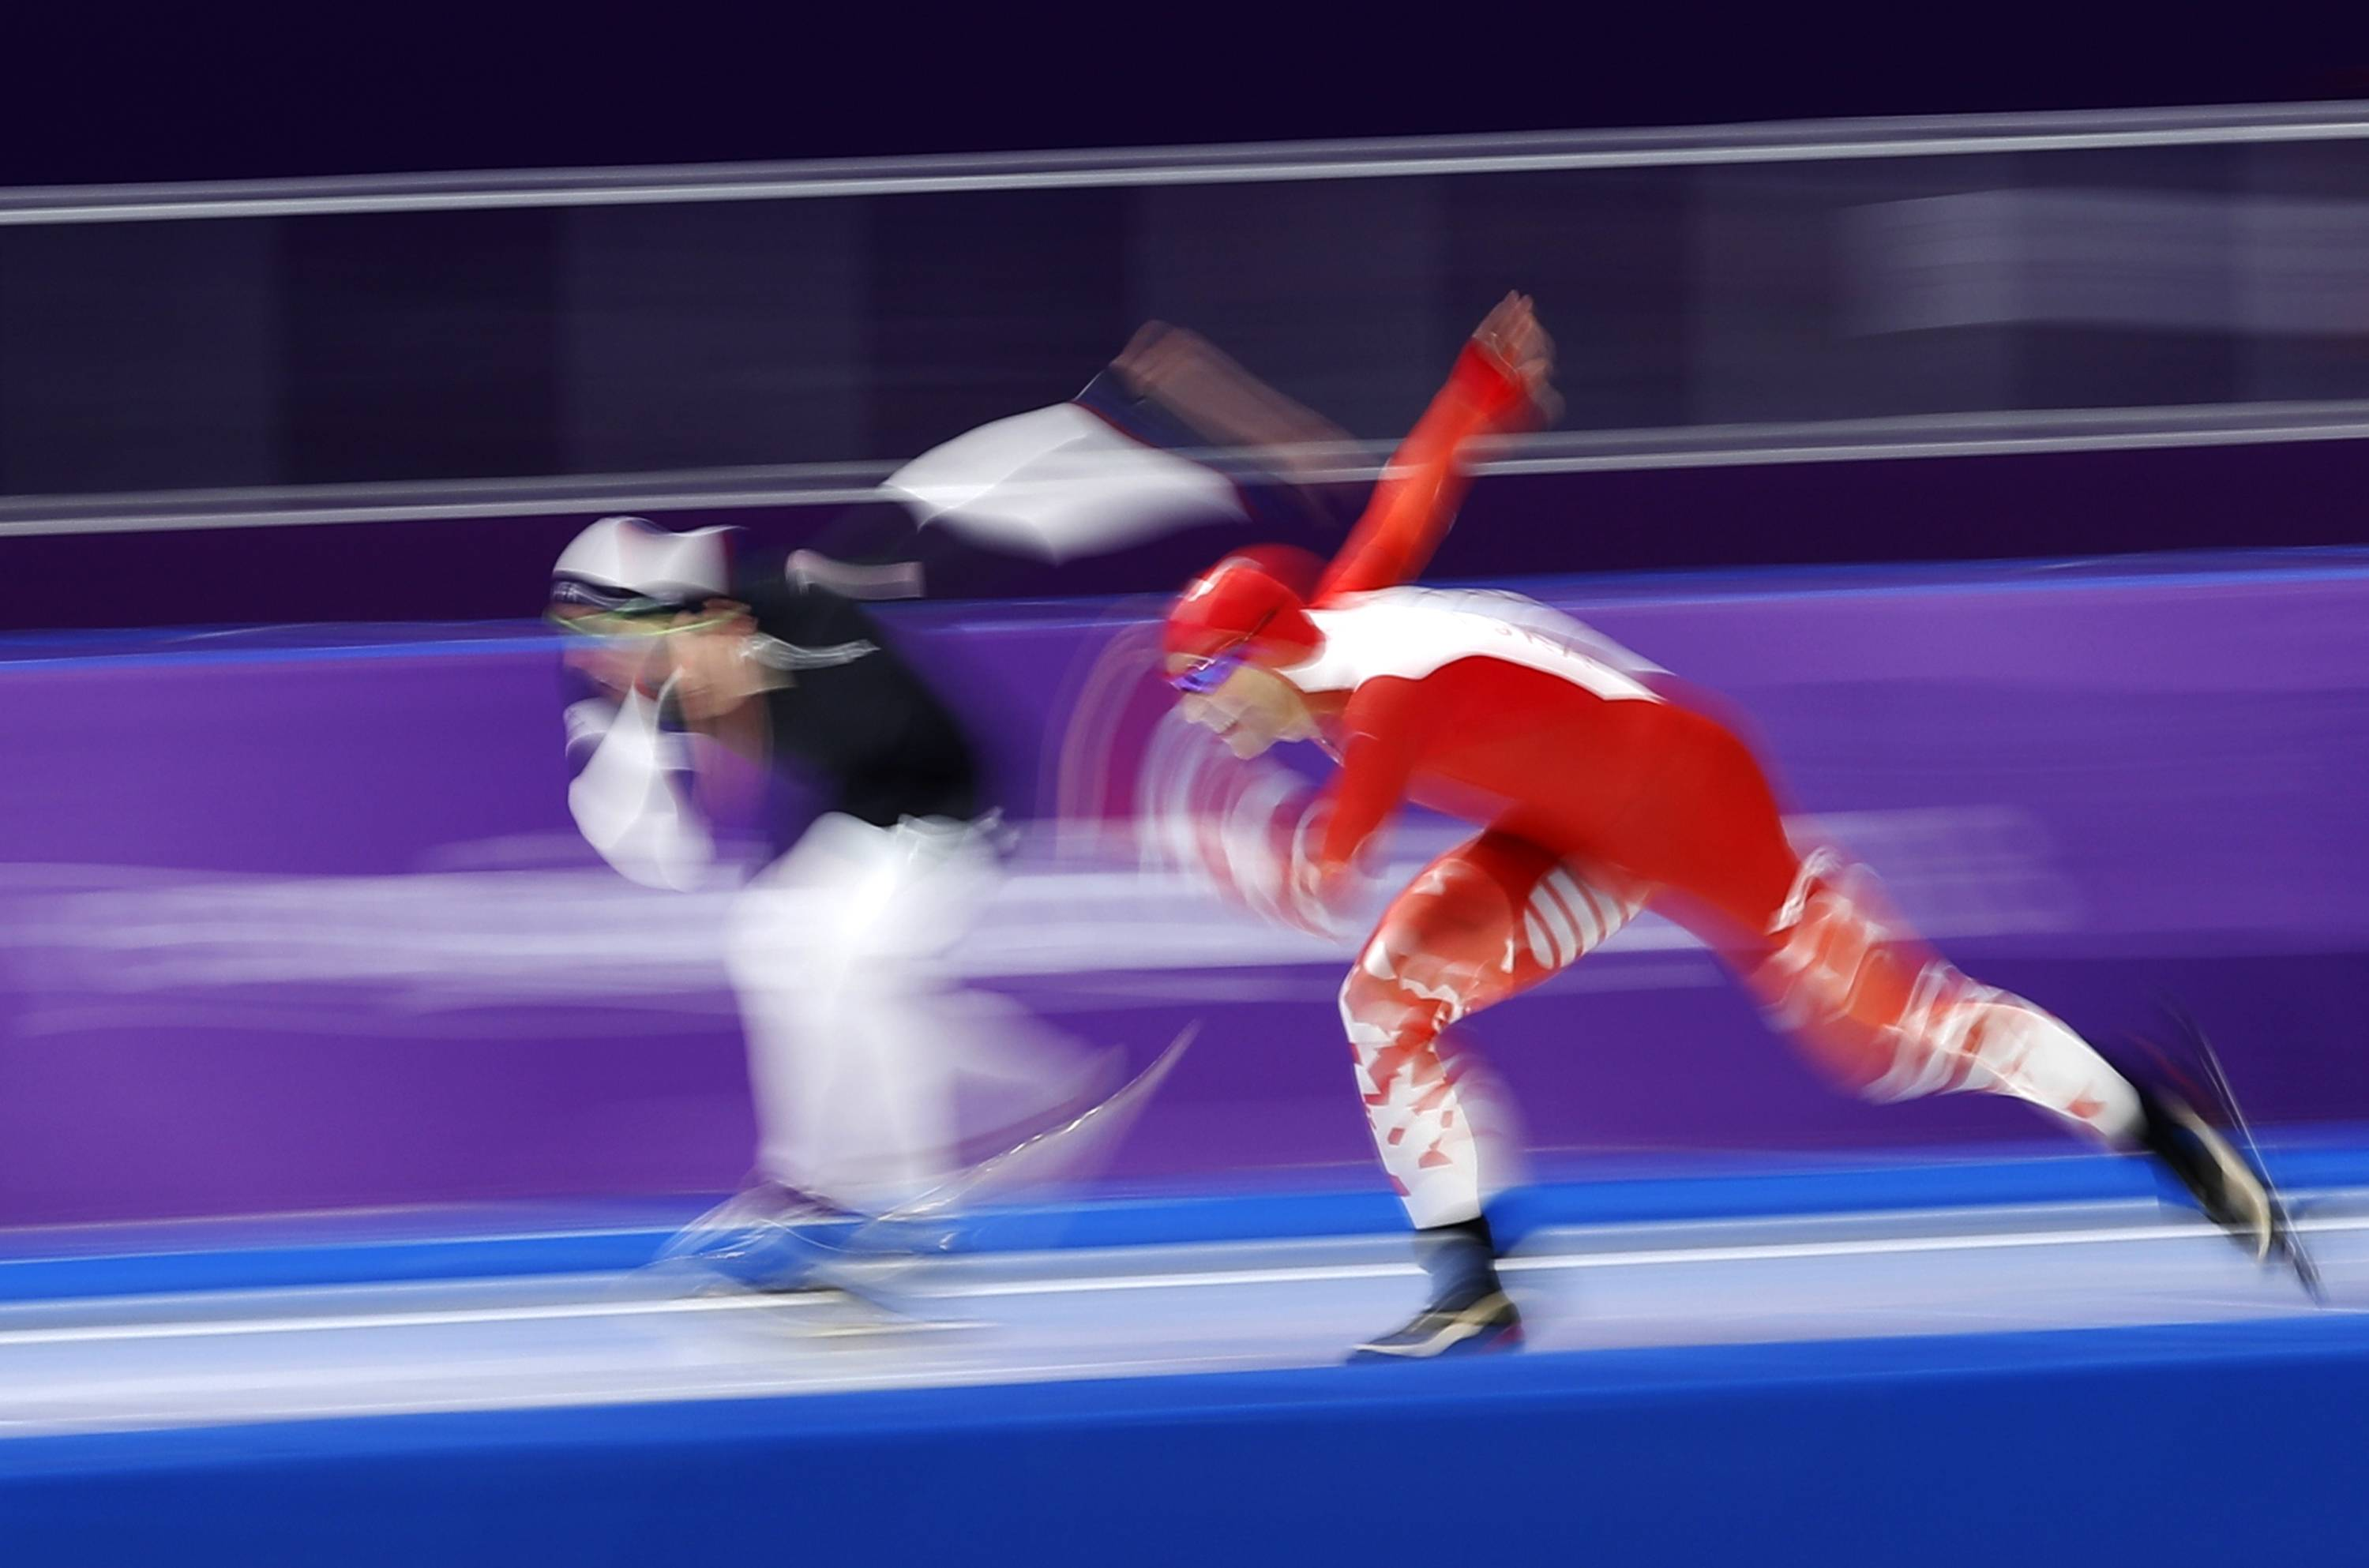 A blur on the ice, Brian Hansen of the United State, left, and Zbigniew Brodka of Poland compete during the men's 1,500 meters speedskating race at the Gangneung Oval at the 2018 Winter Olympics in, Tuesday, Feb. 13, 2018. (AP Photo/Vadim Ghirda)